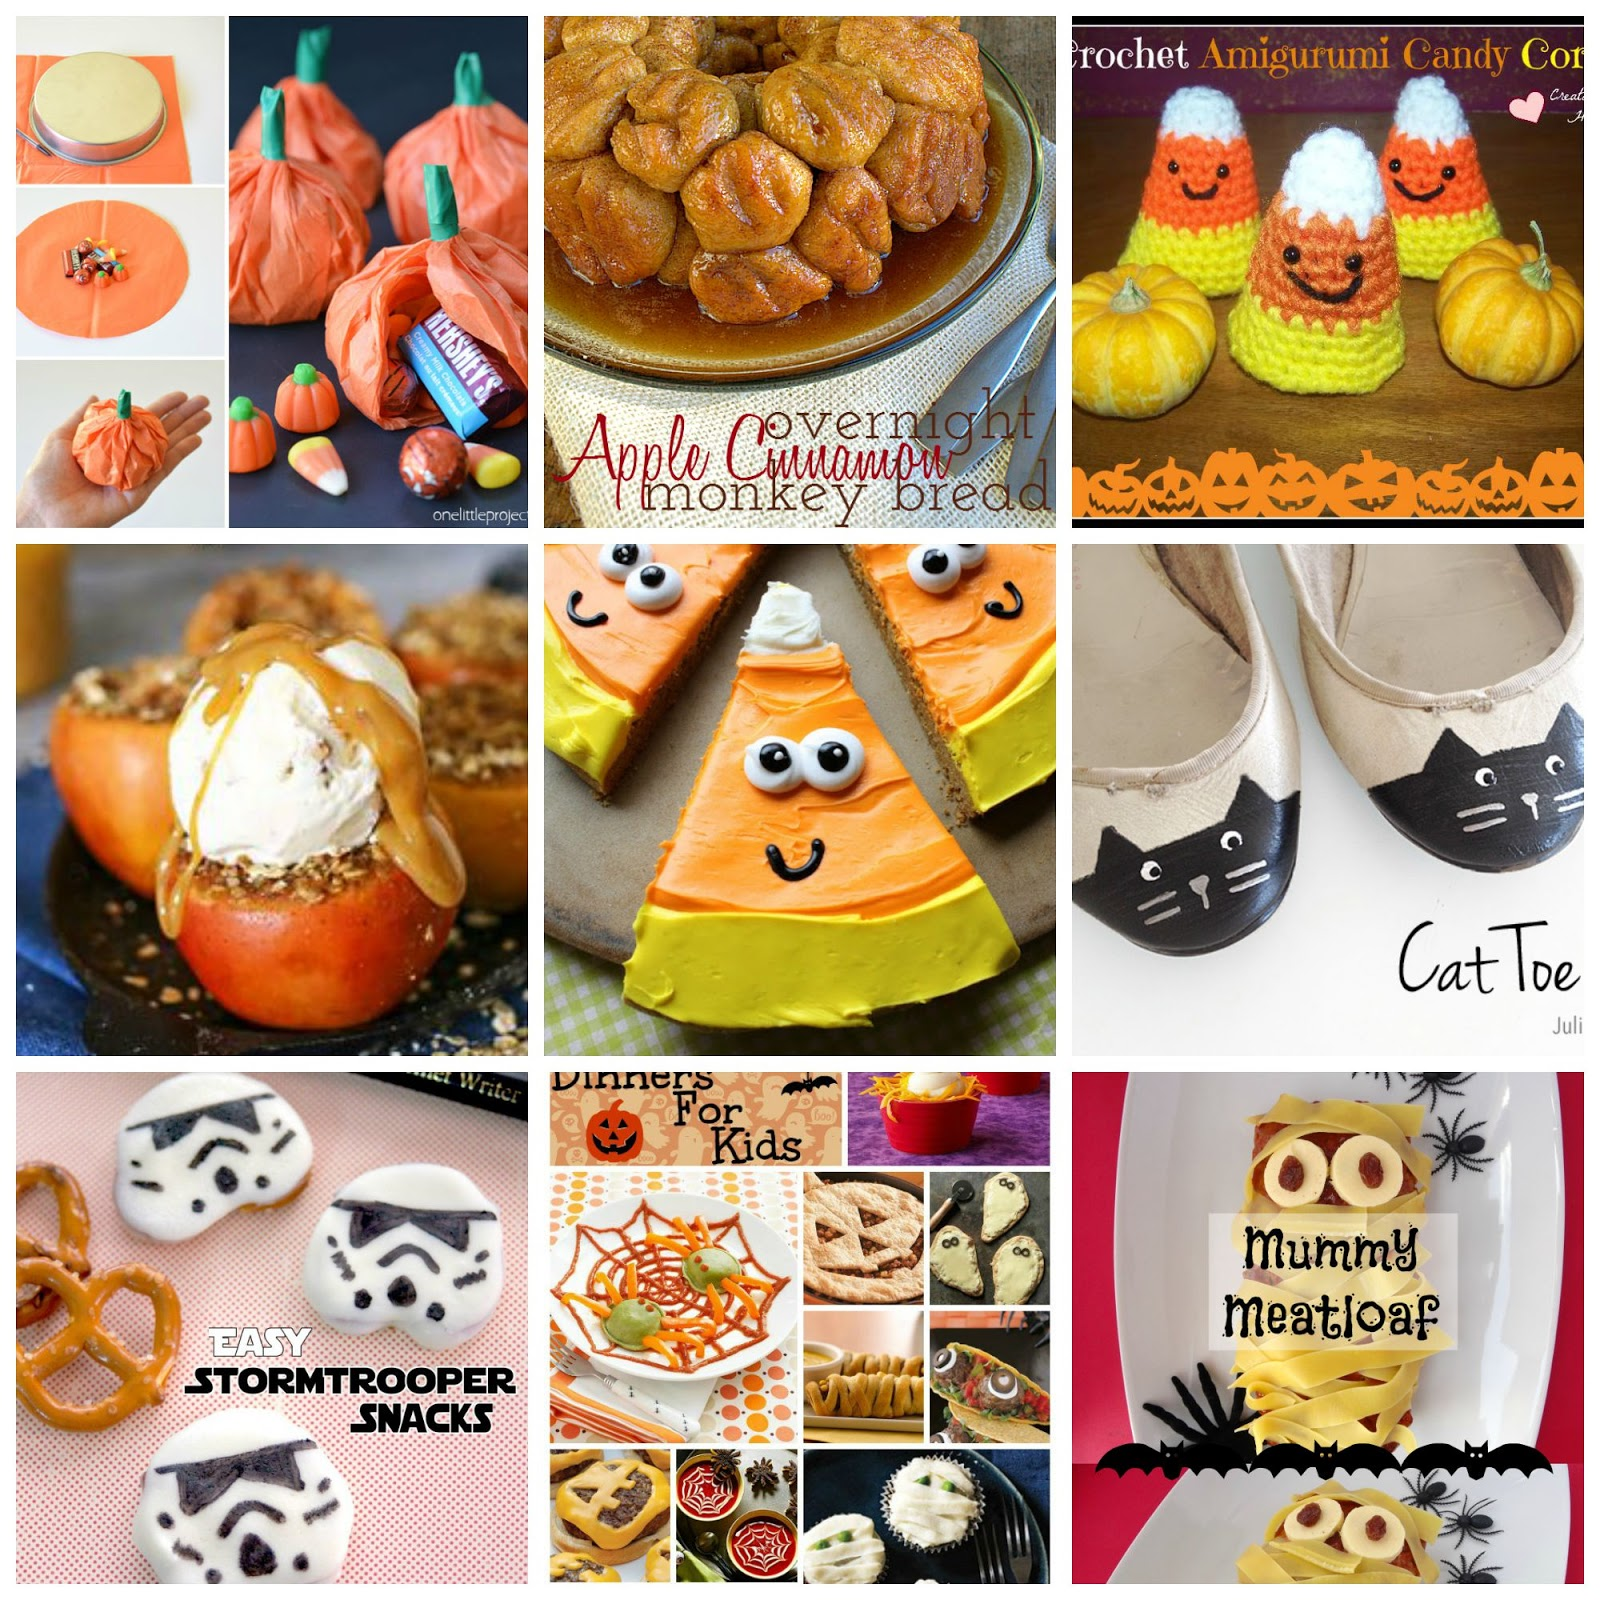 Kitchen Fun And Crafty Friday Link Party 167: Kitchen Fun & Crafty Friday Link Party #184